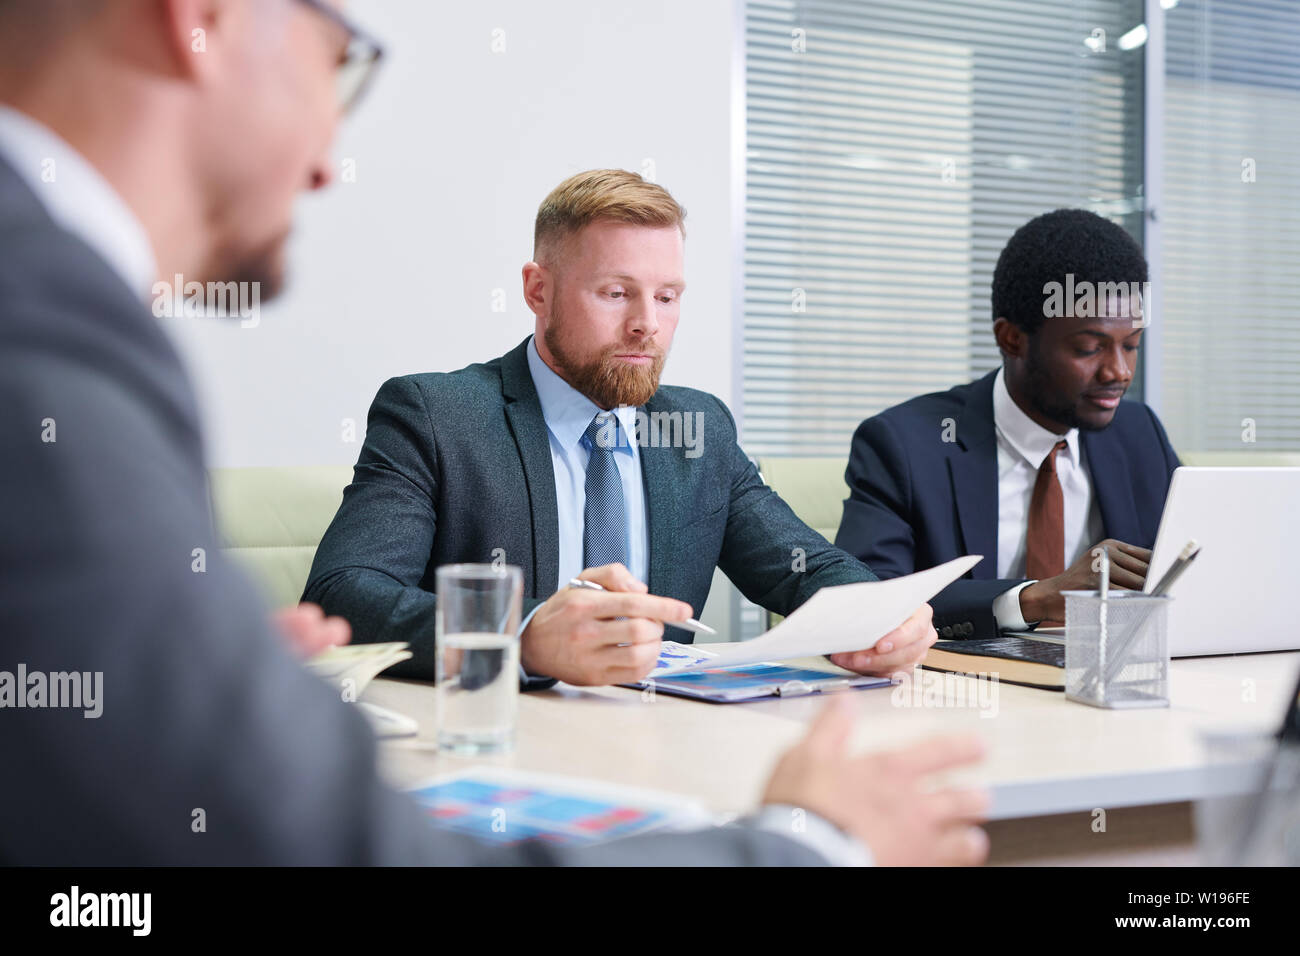 Group of young multicultural co-workers getting ready with reports before conference - Stock Image